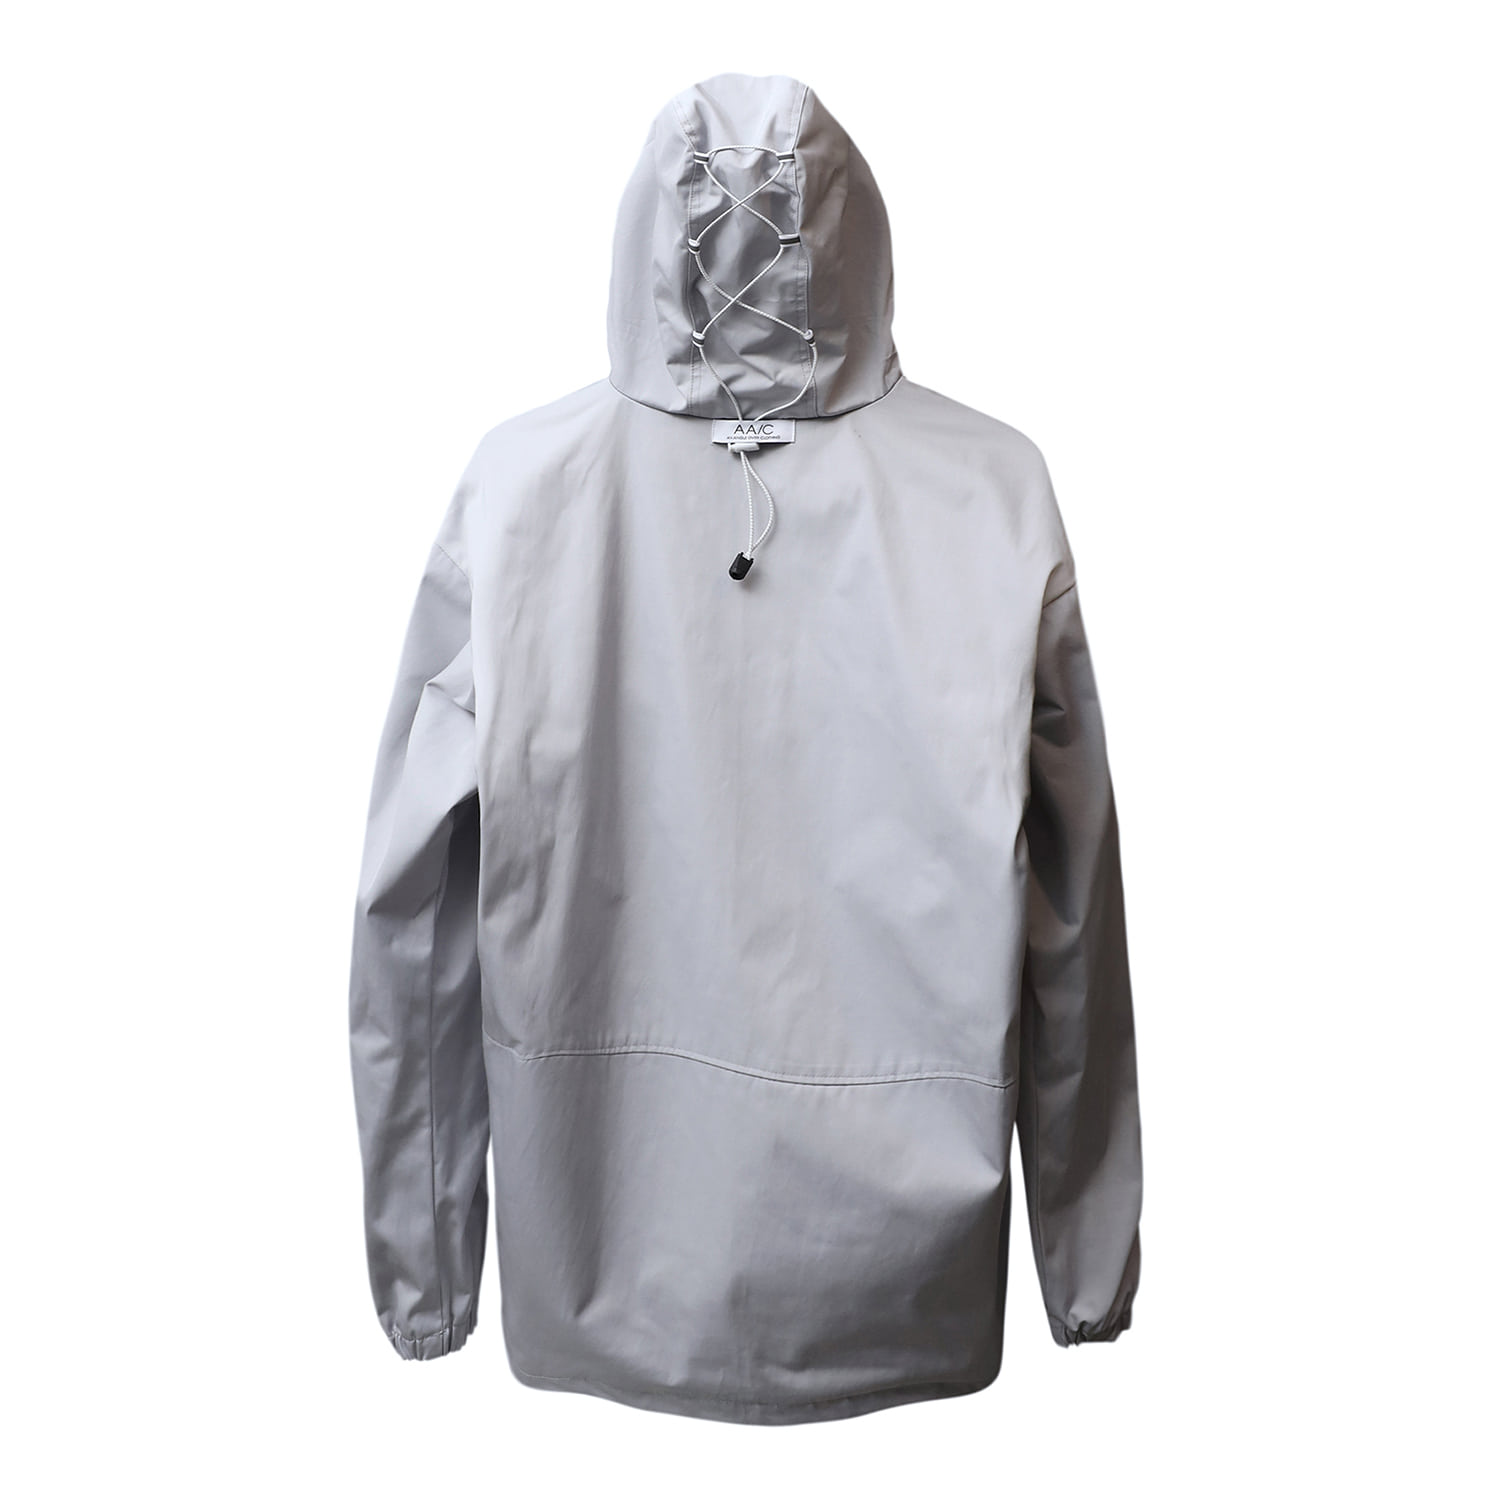 APARTMENT String Jacket (gray)